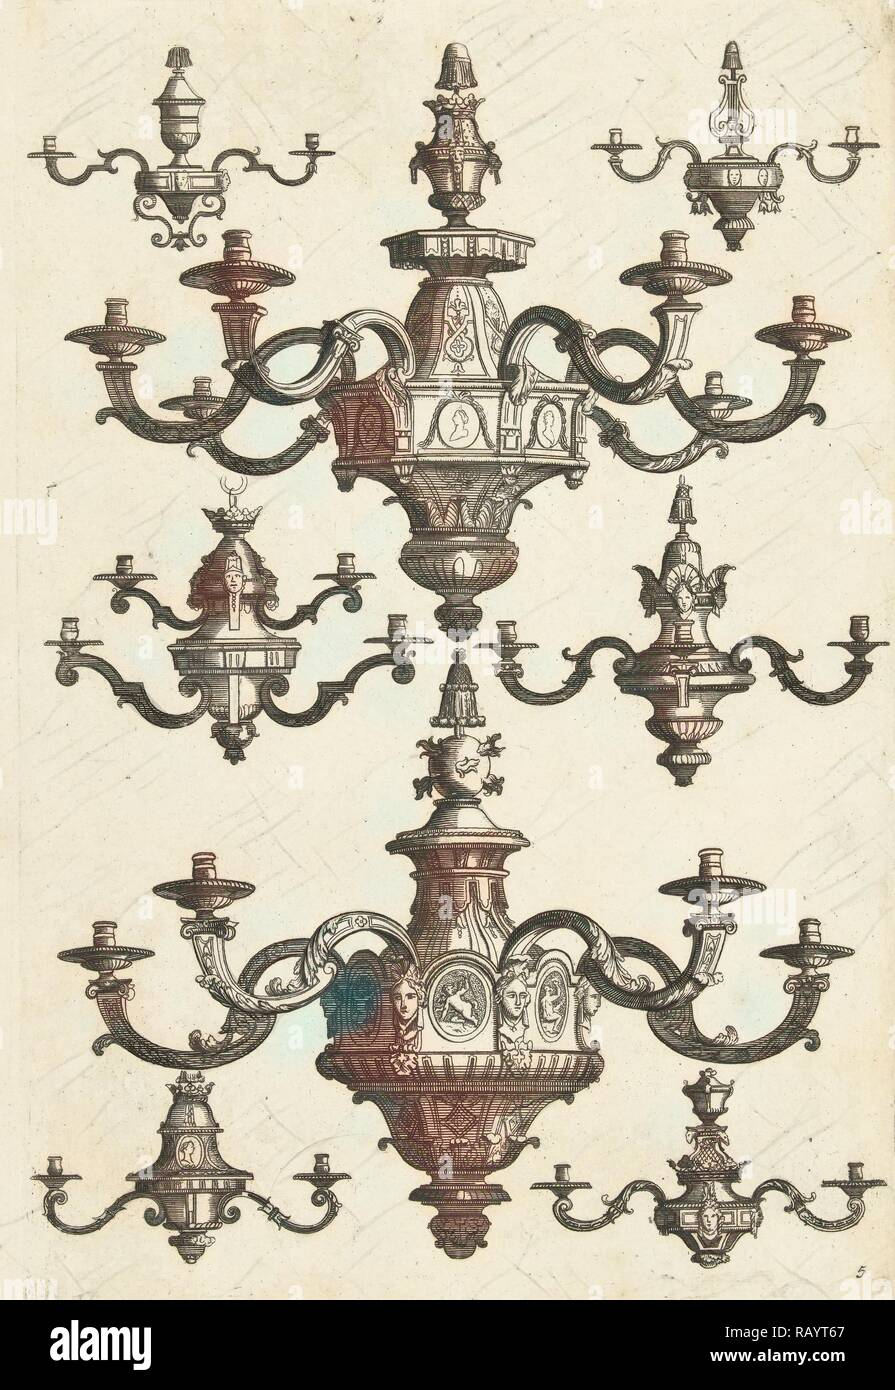 Two large and six small chandeliers, Daniël Marot (I), Anonymous, Anonymous, after 1703 - before 1800. Reimagined - Stock Image